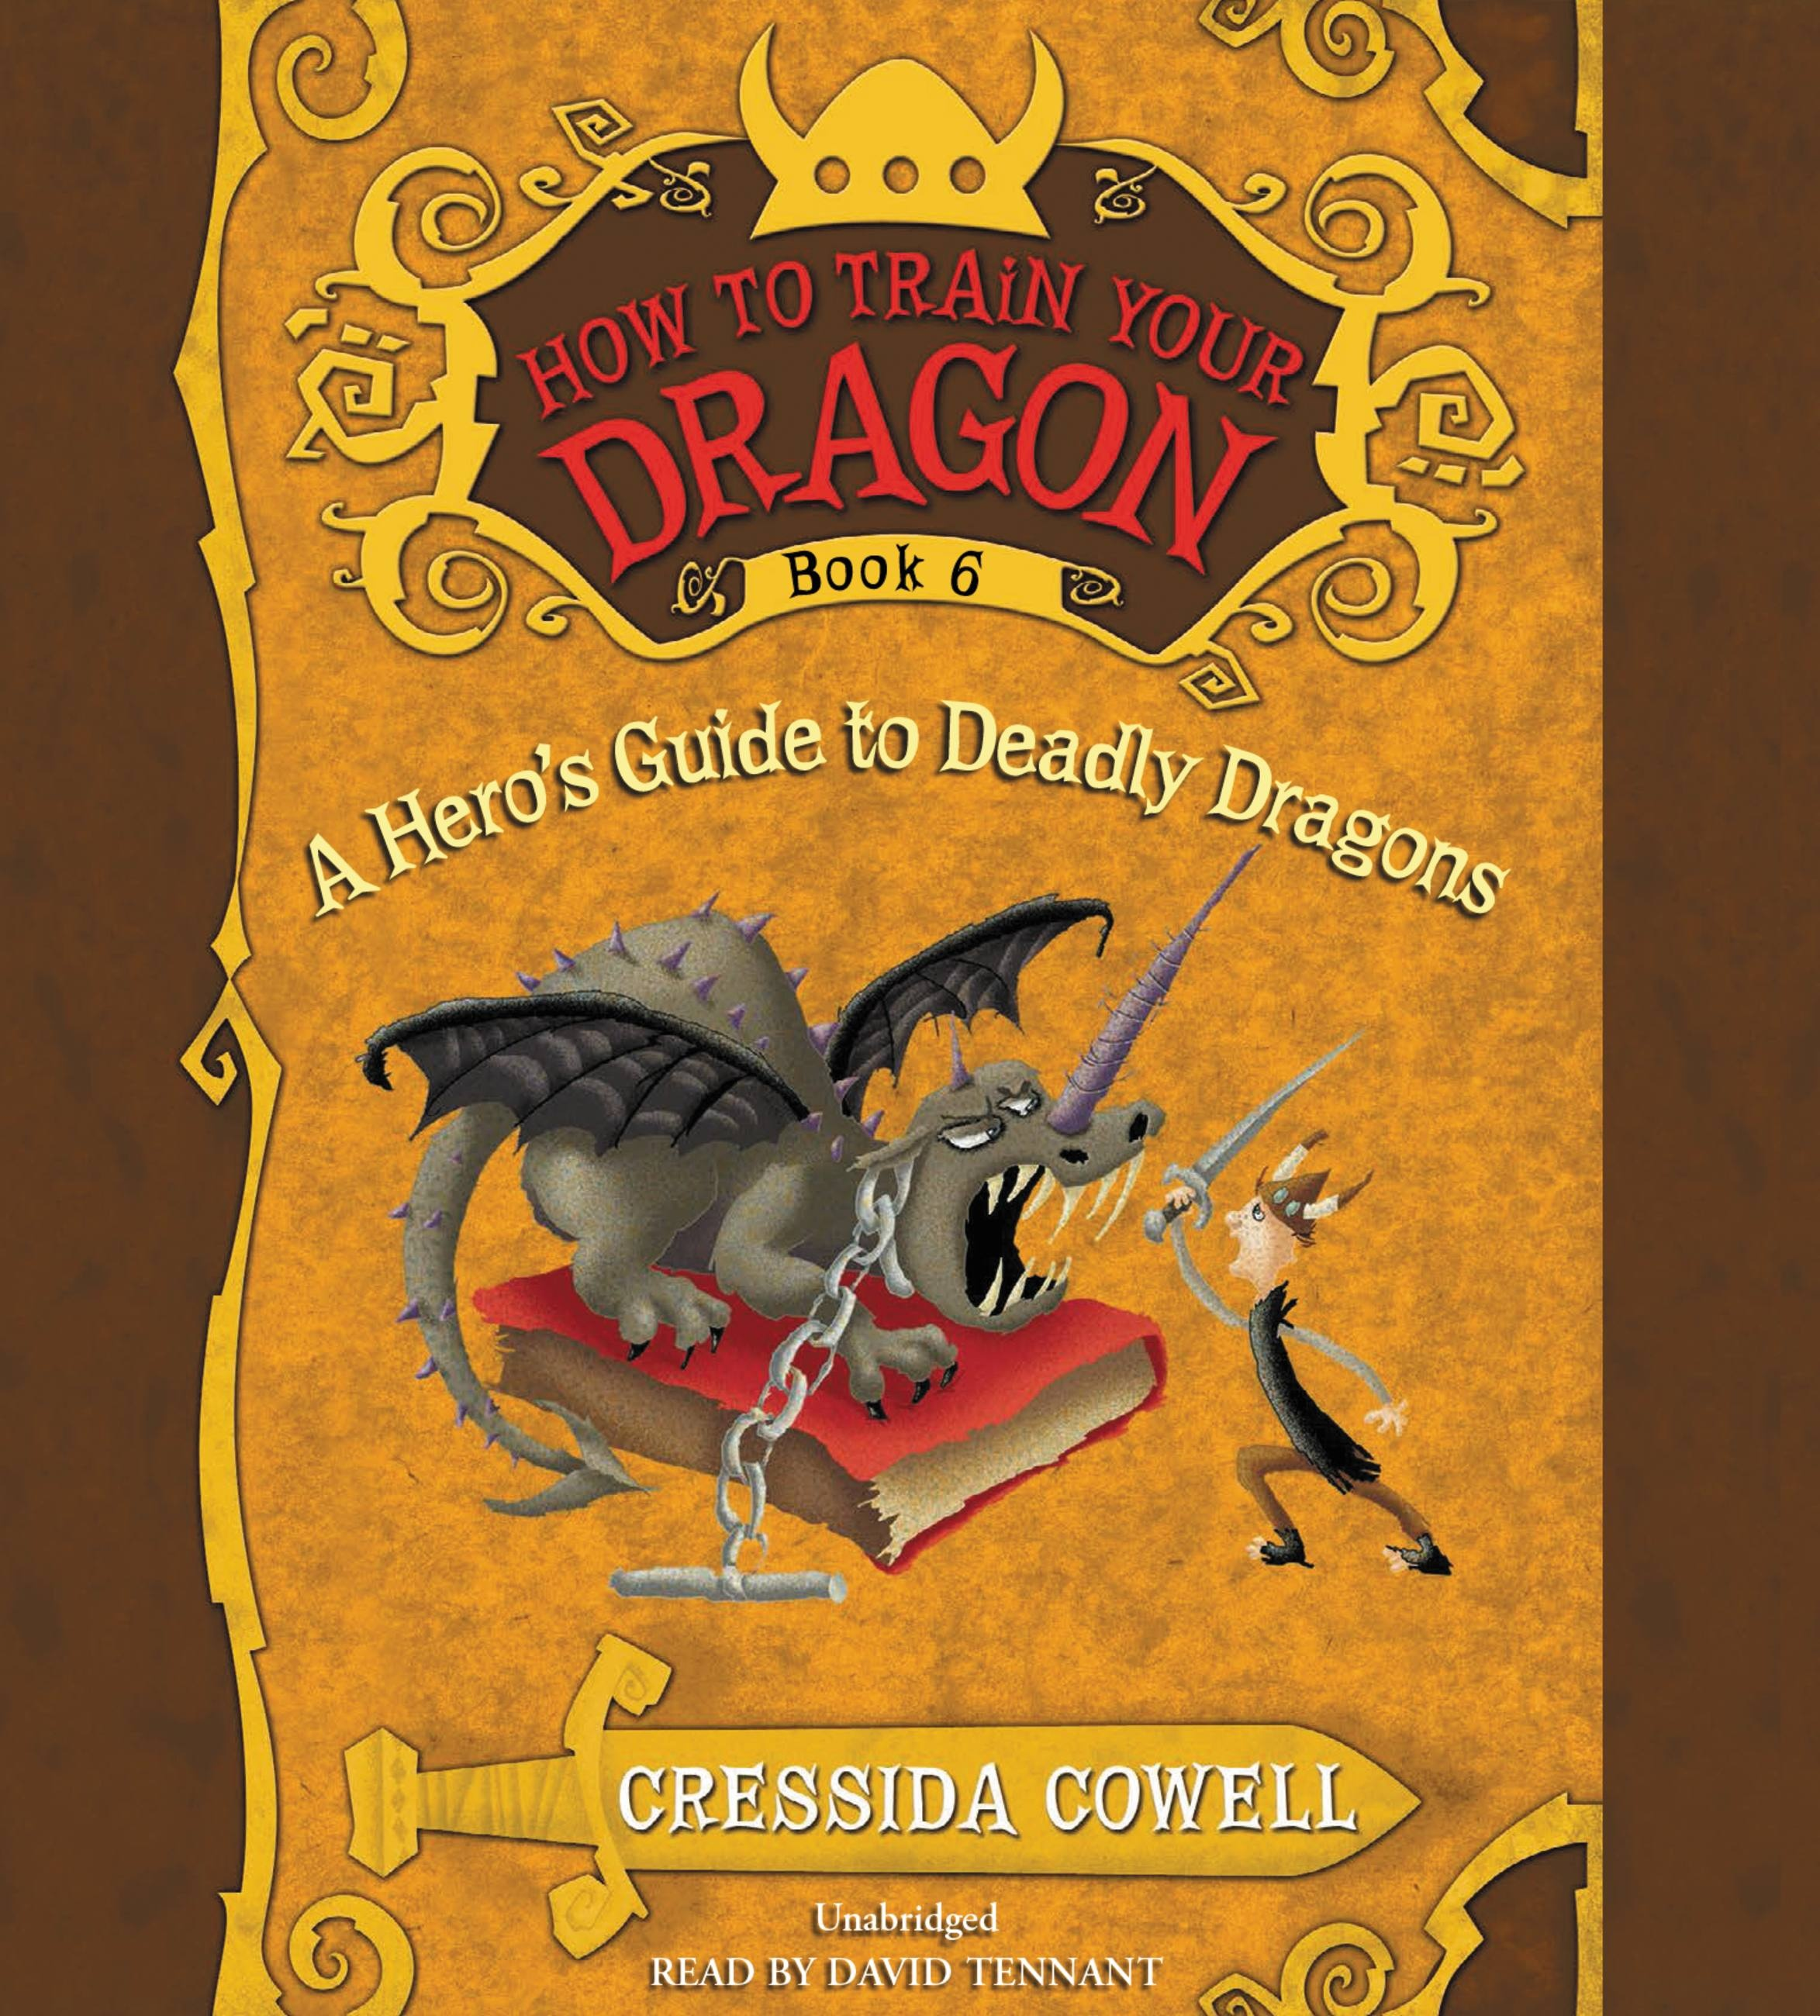 How to train your dragon a heros guide to deadly dragons by how to train your dragon a heros guide to deadly dragons by cressida cowell little brown books for young readers ccuart Gallery